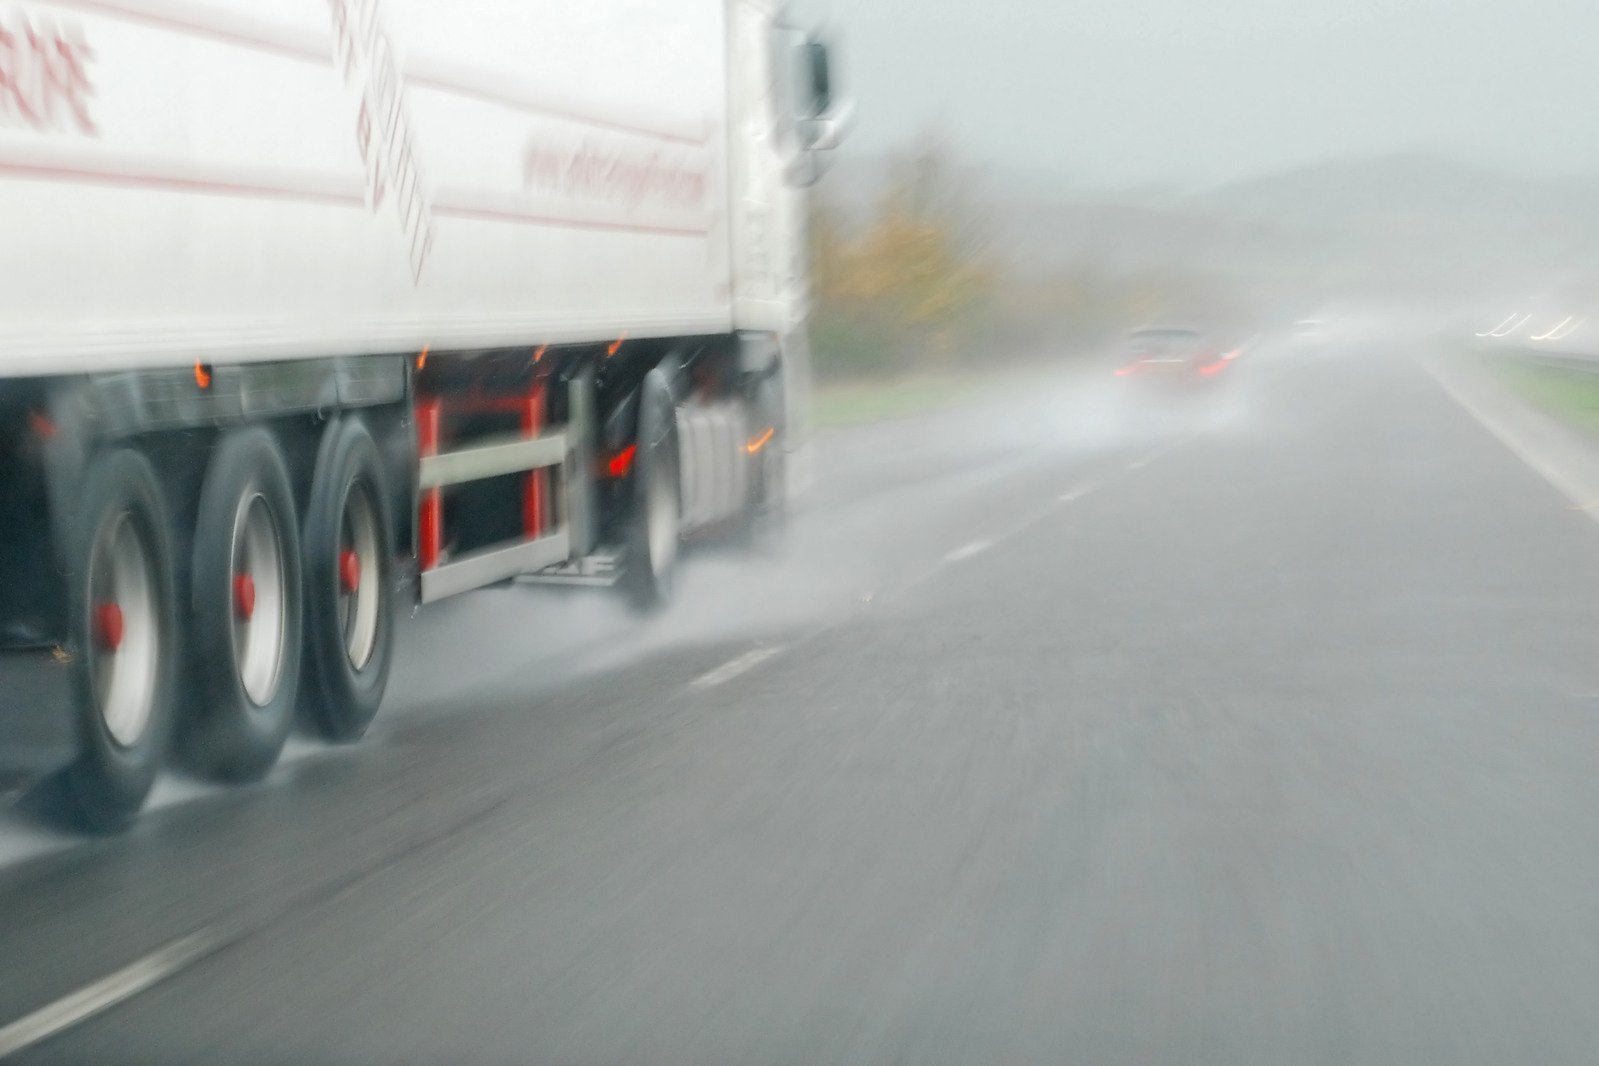 miami personal injury lawyer serving trucking accidents